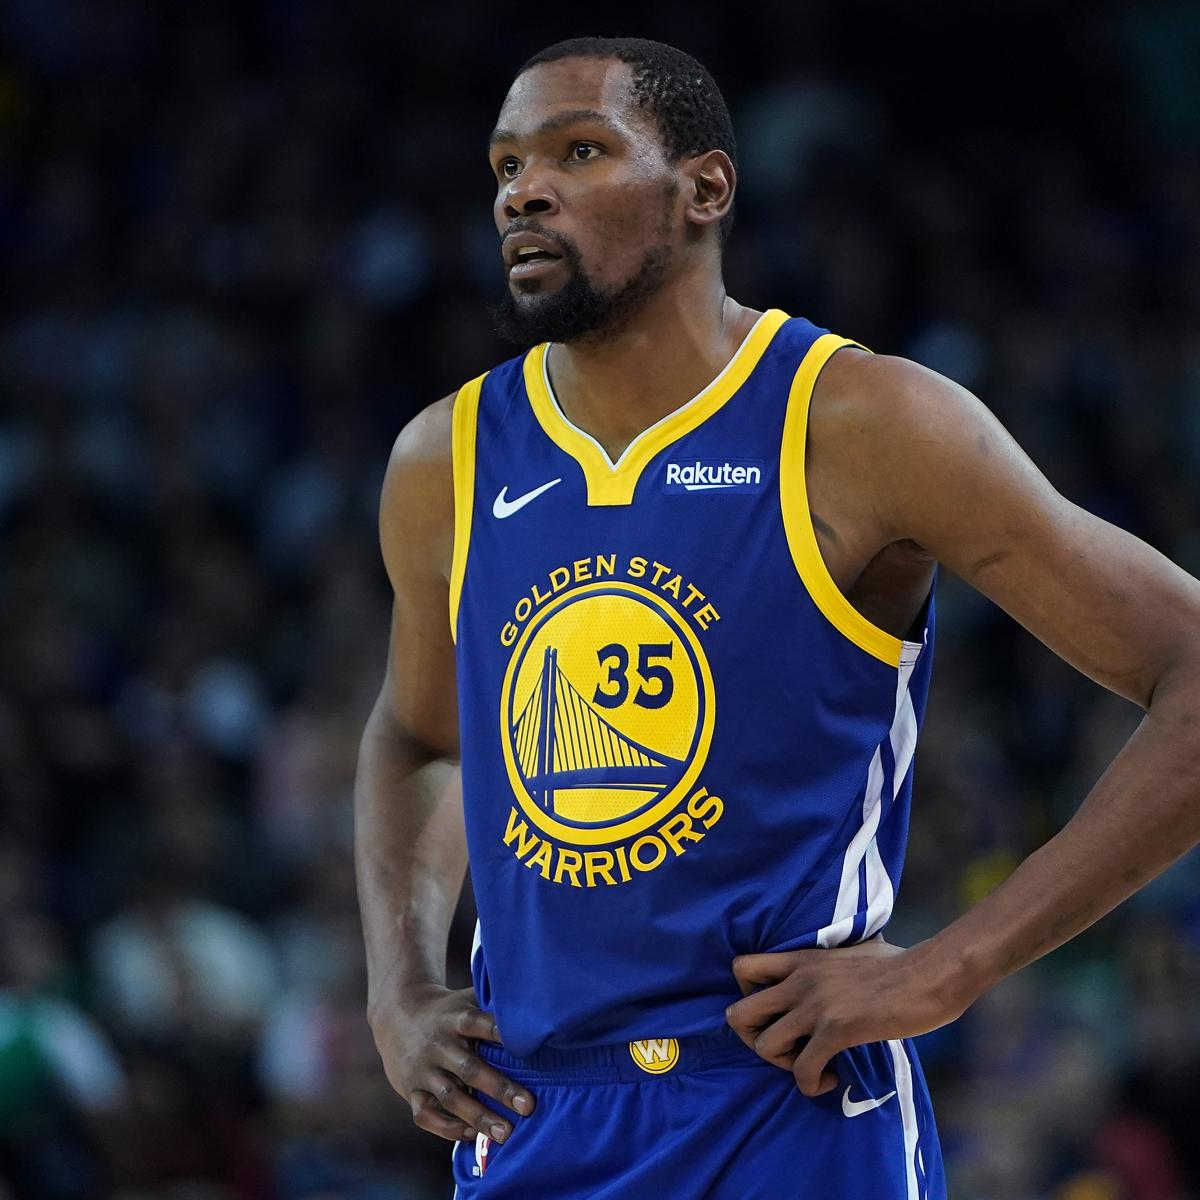 Rockets Vs Warriors Durant: Kevin Durant Won't Play Vs. Rockets After Suffering Ankle